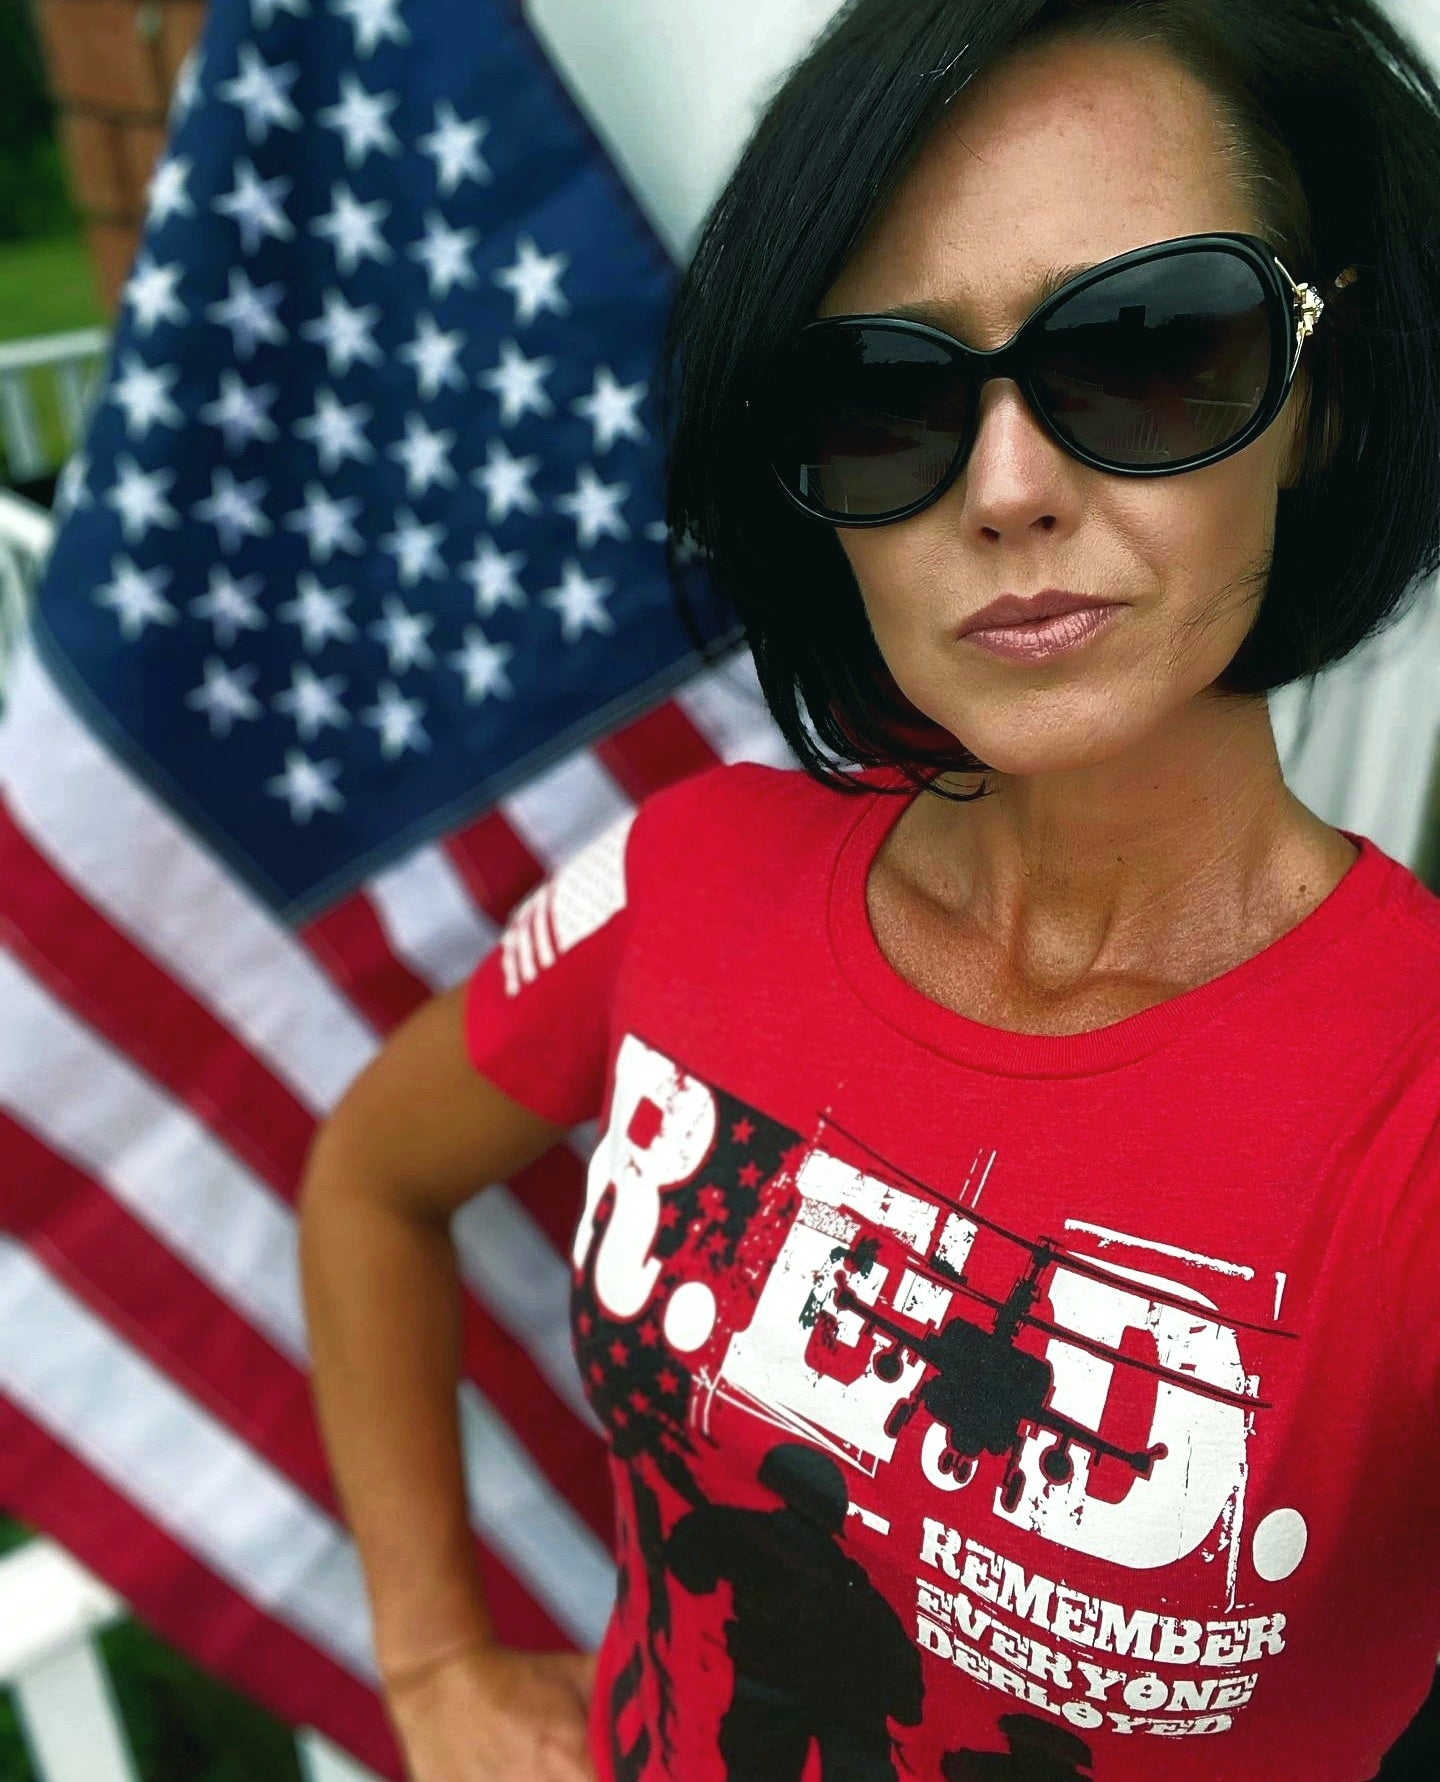 RED Friday Patriotic T-shirts. At Grit Gear Apparel we have want you need to support our troops every RED Friday with a great selection of Patriotic Apparel